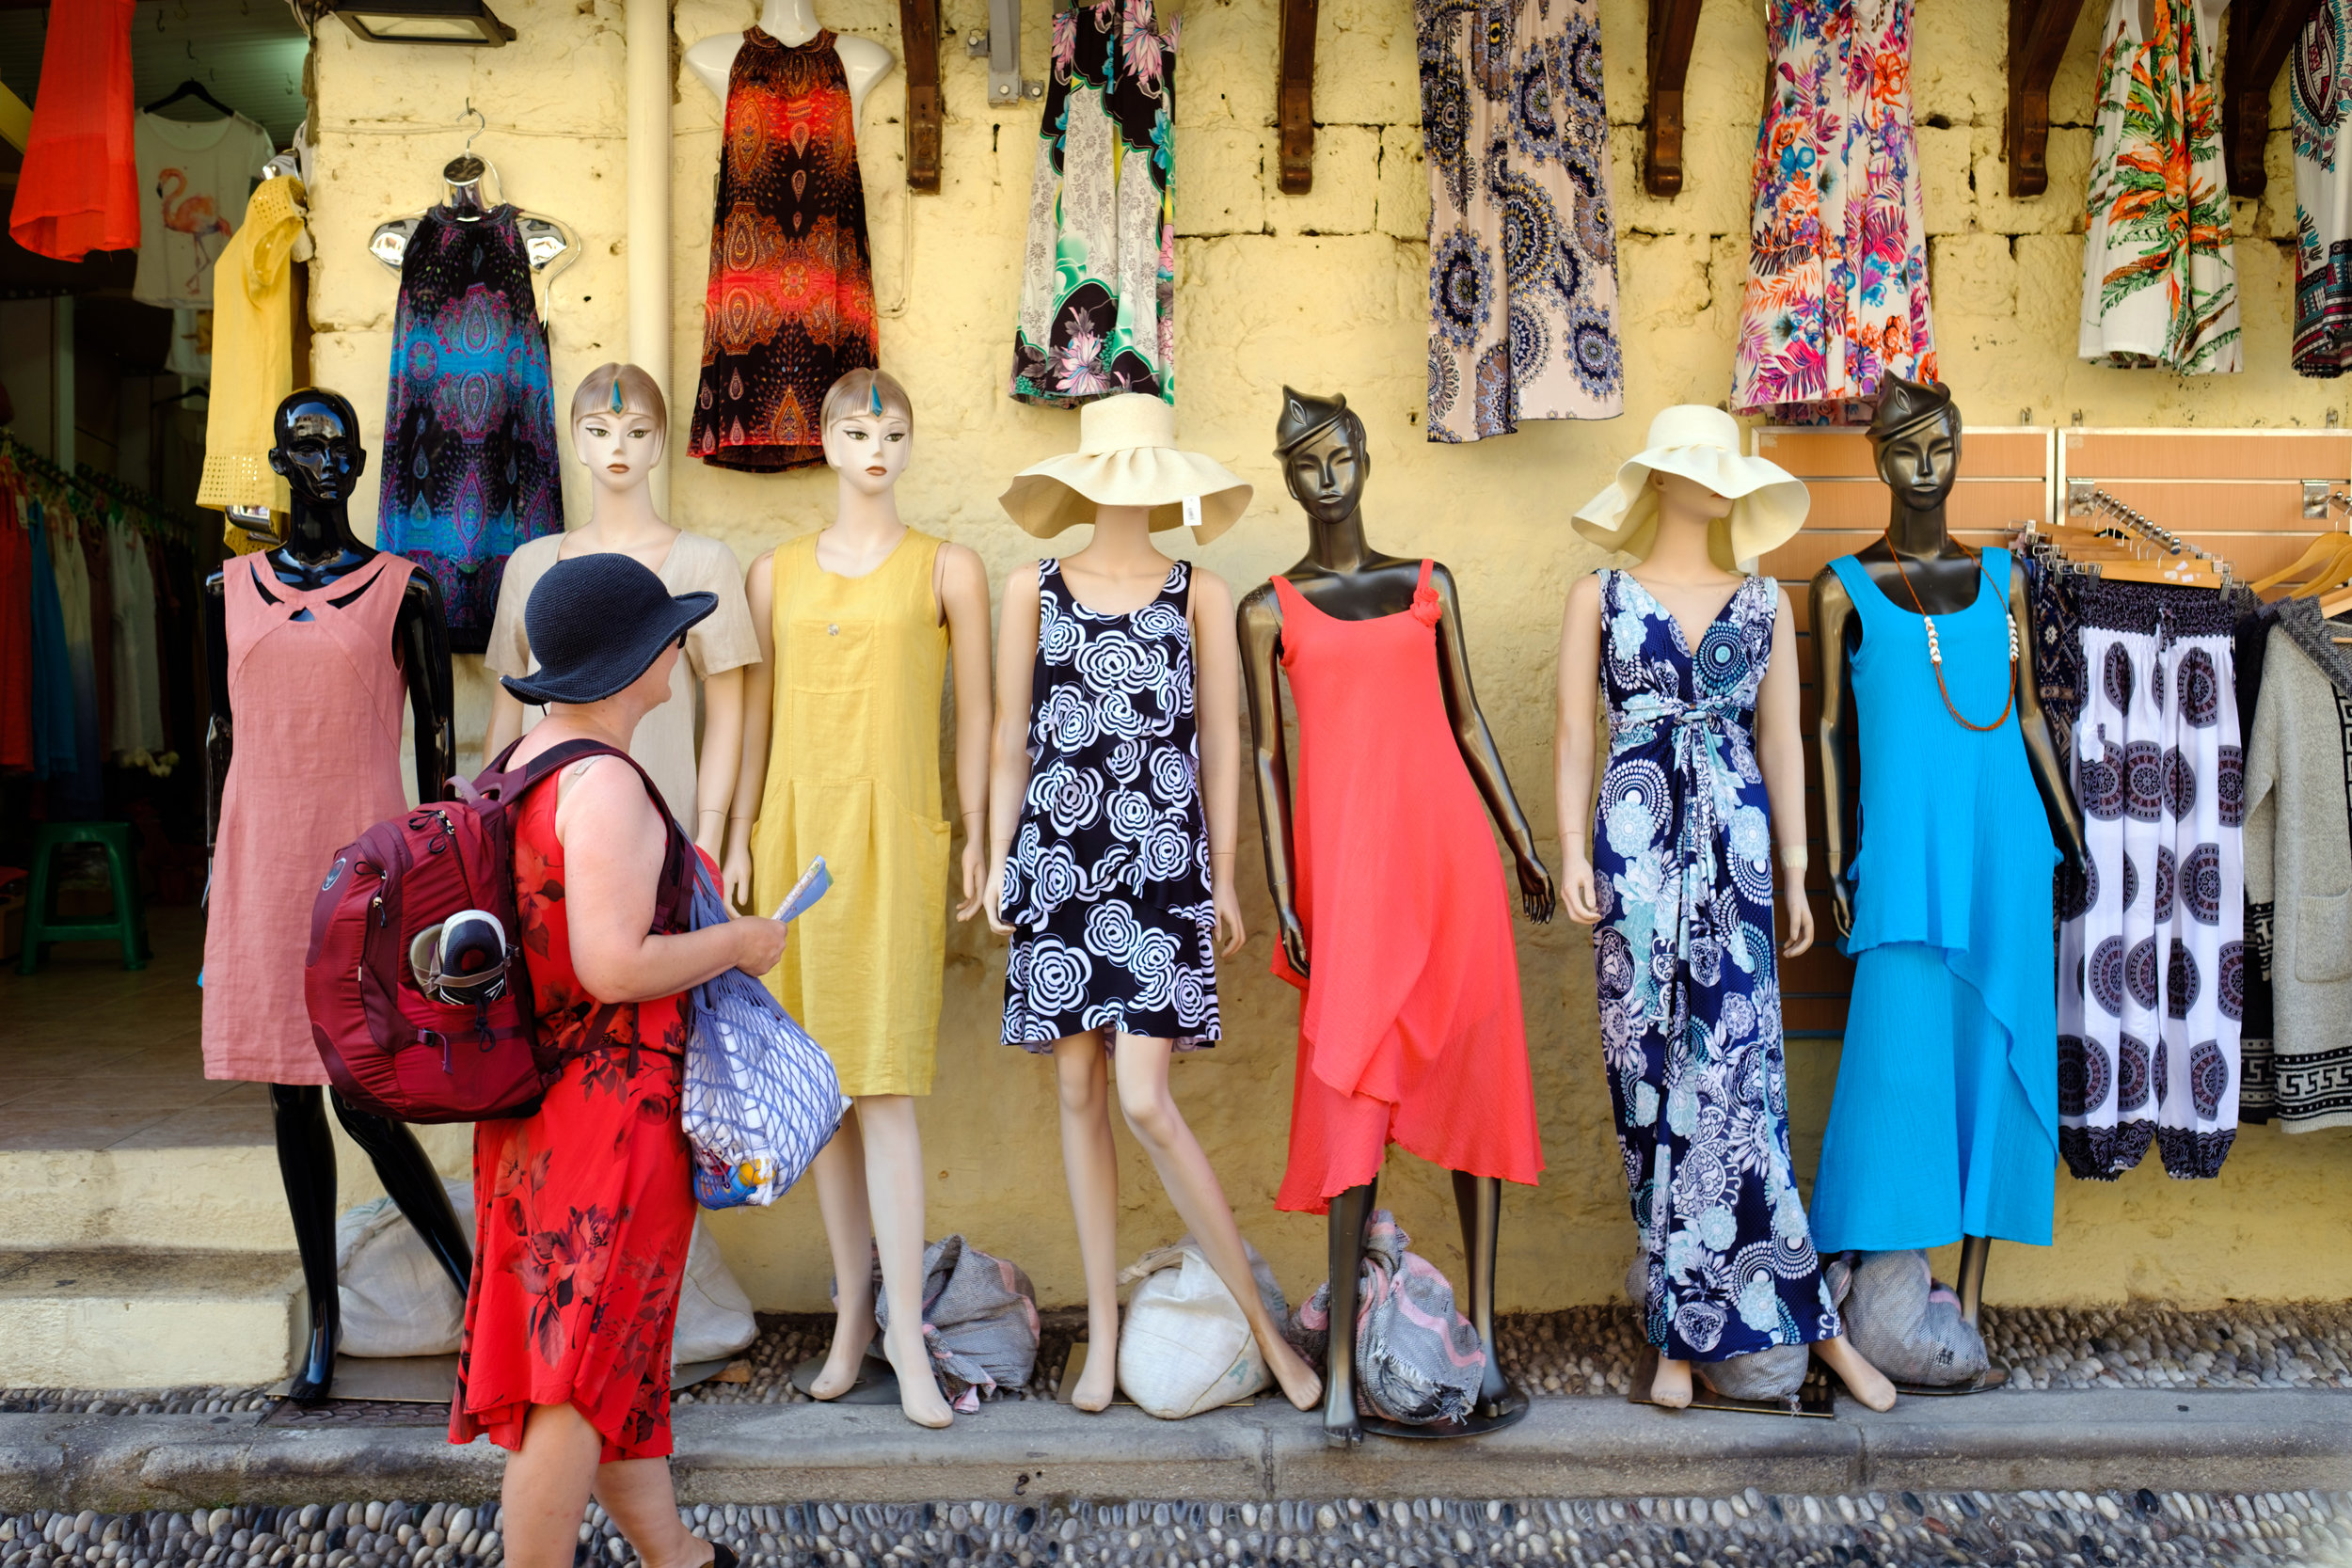 A Canadian woman shopping for dresses in Old Town Rhodes, Greece